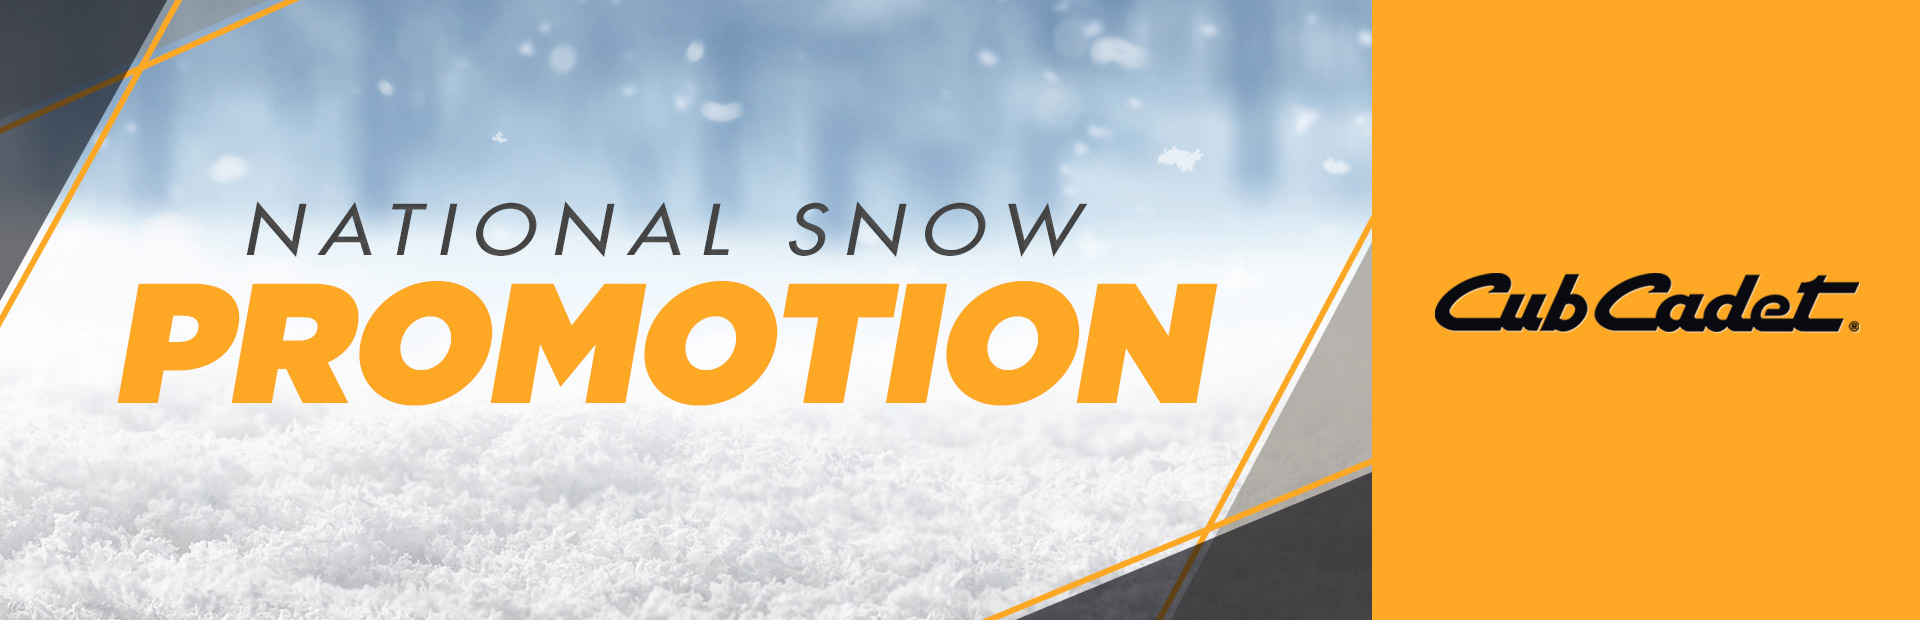 Cub Cadet: National Snow Promotion